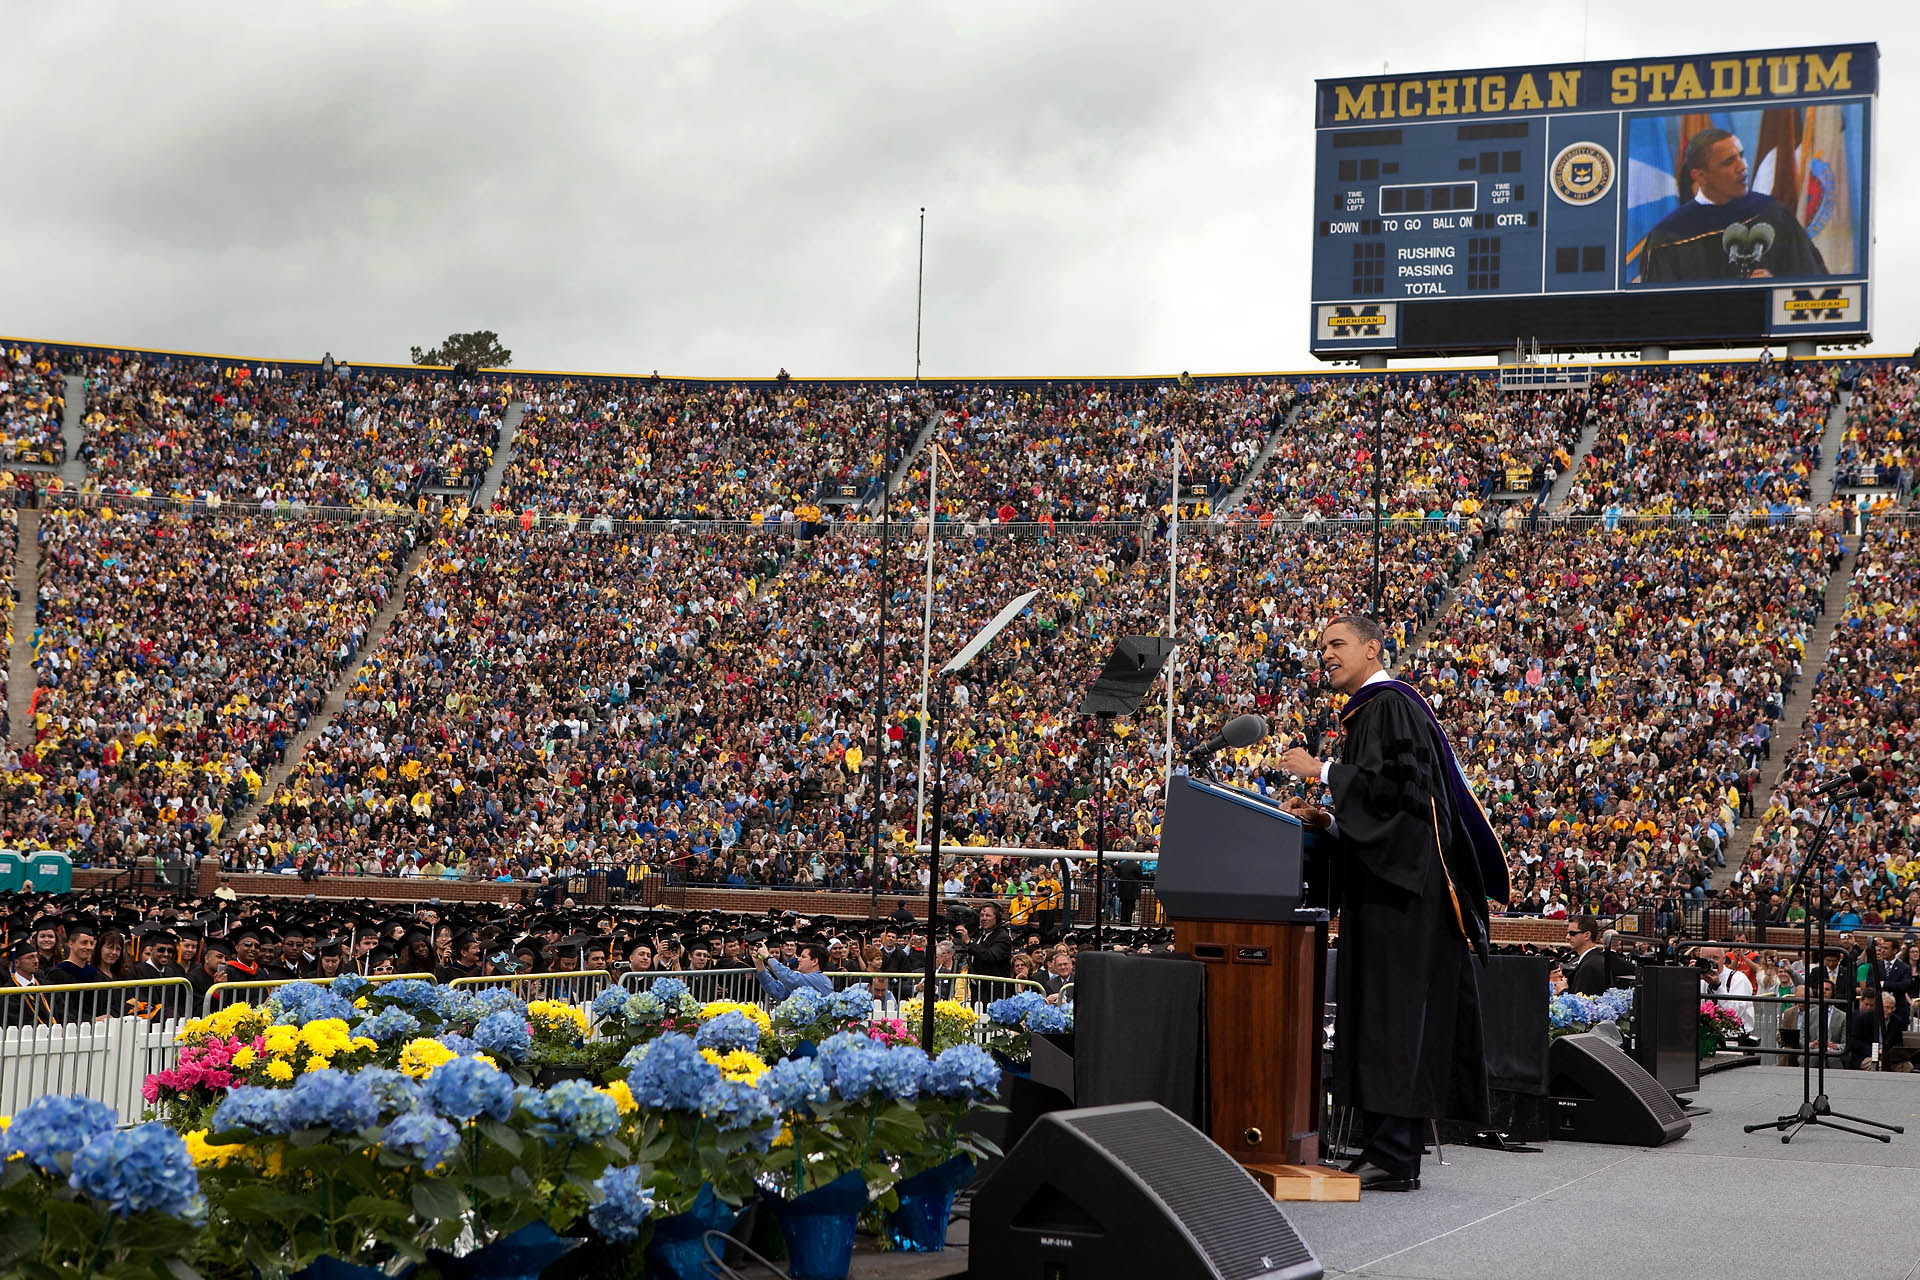 President Obama Delivers Commencement Speech in Michigan